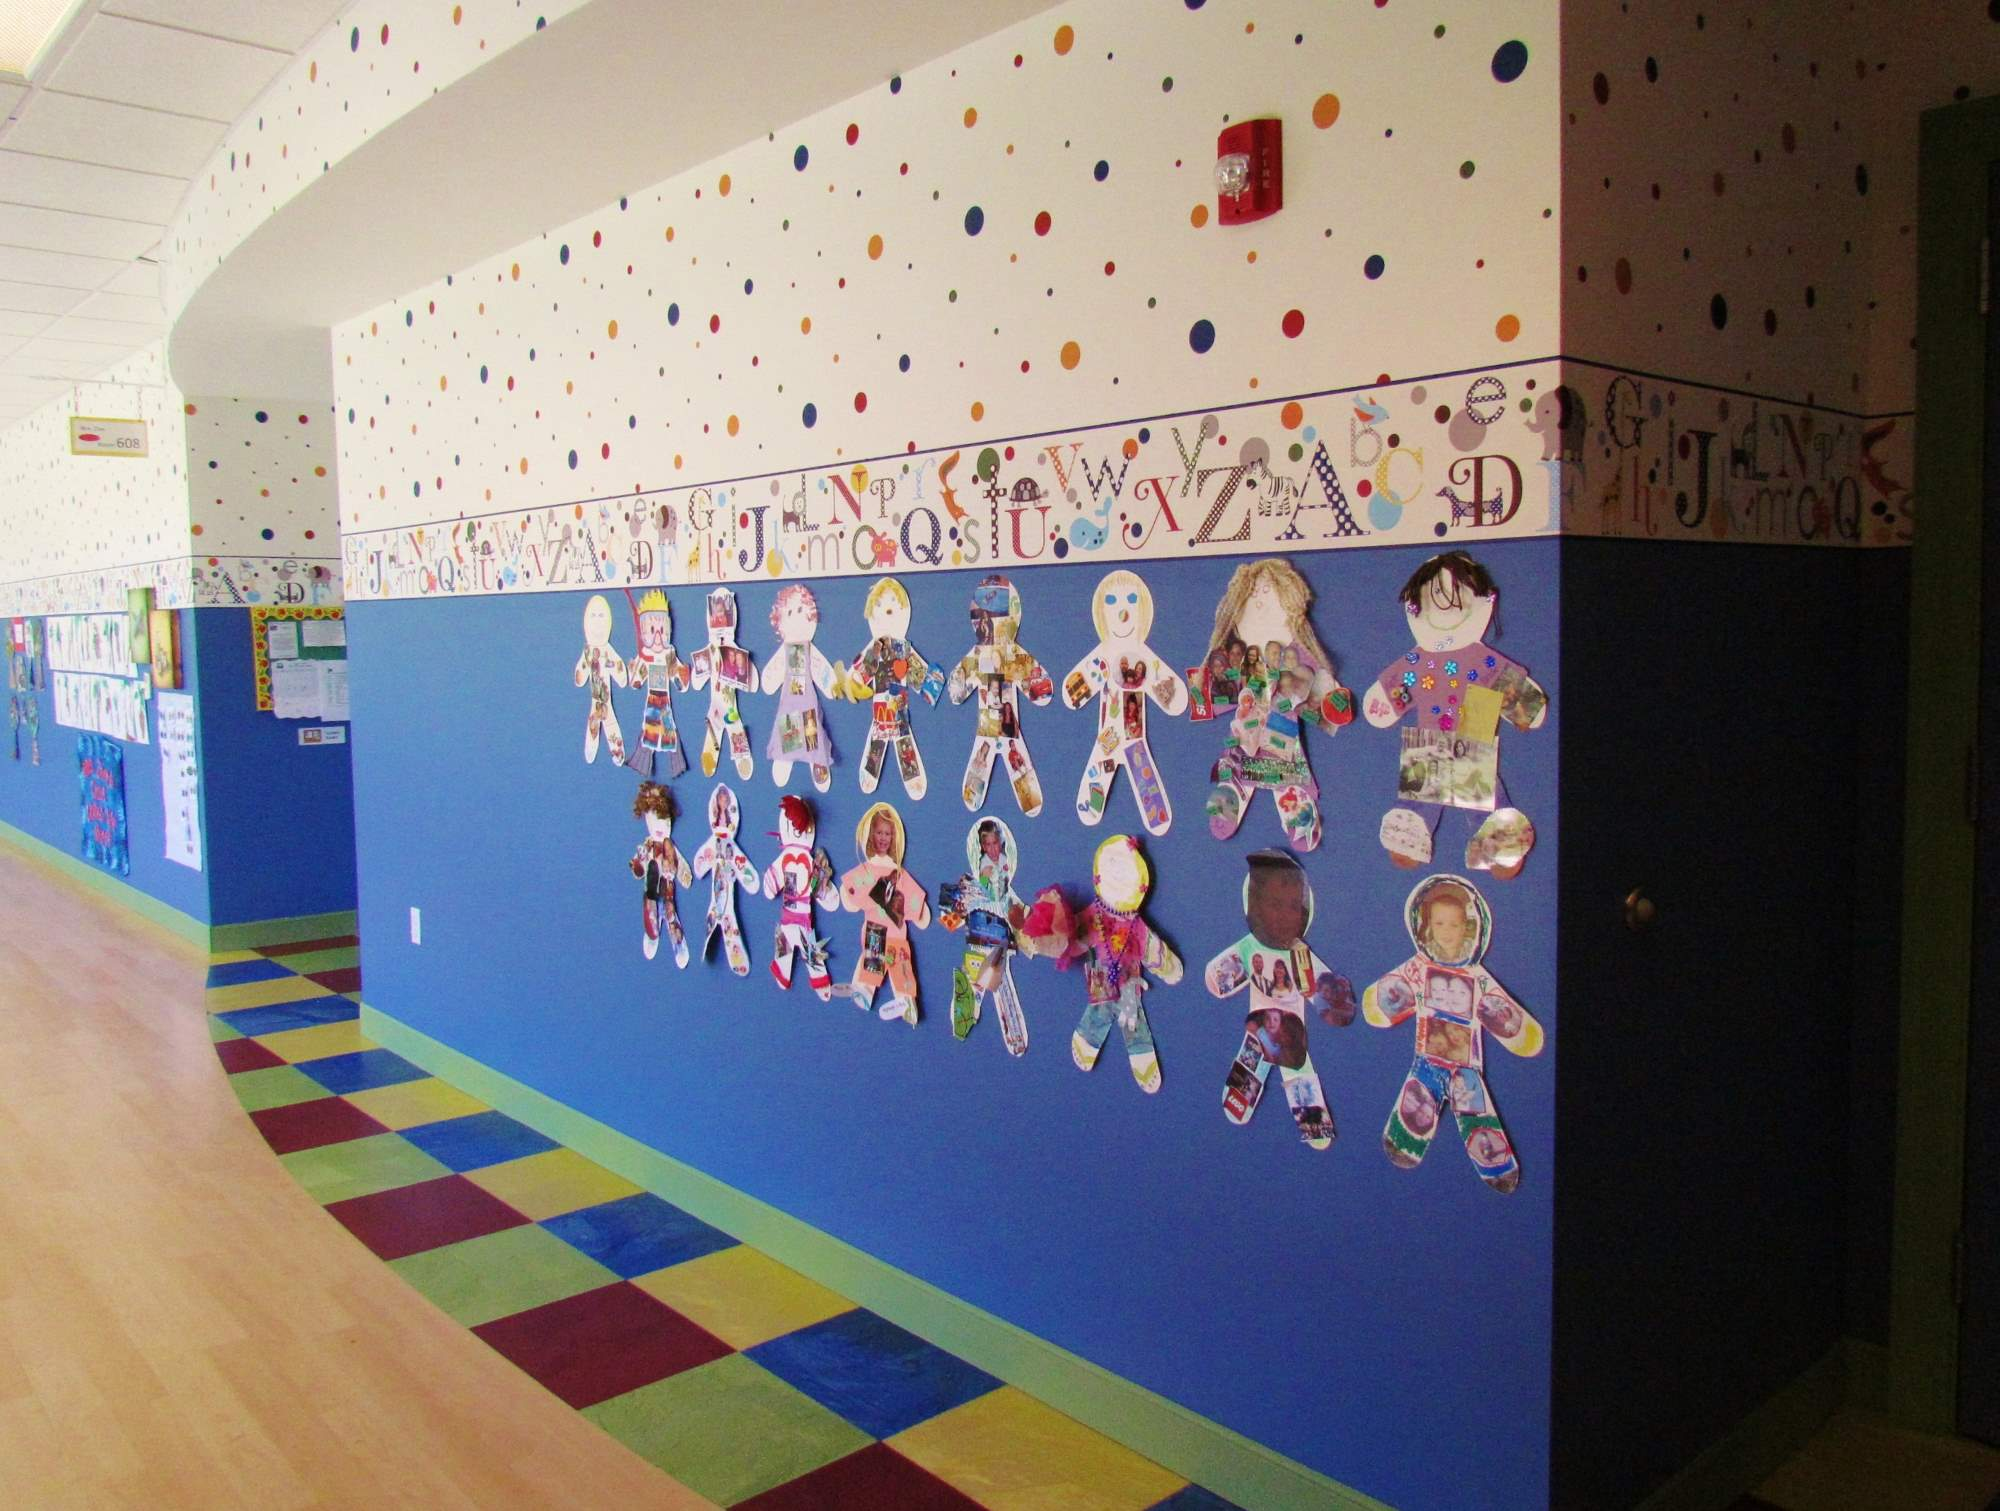 Early Childhood Center image 12 of 18